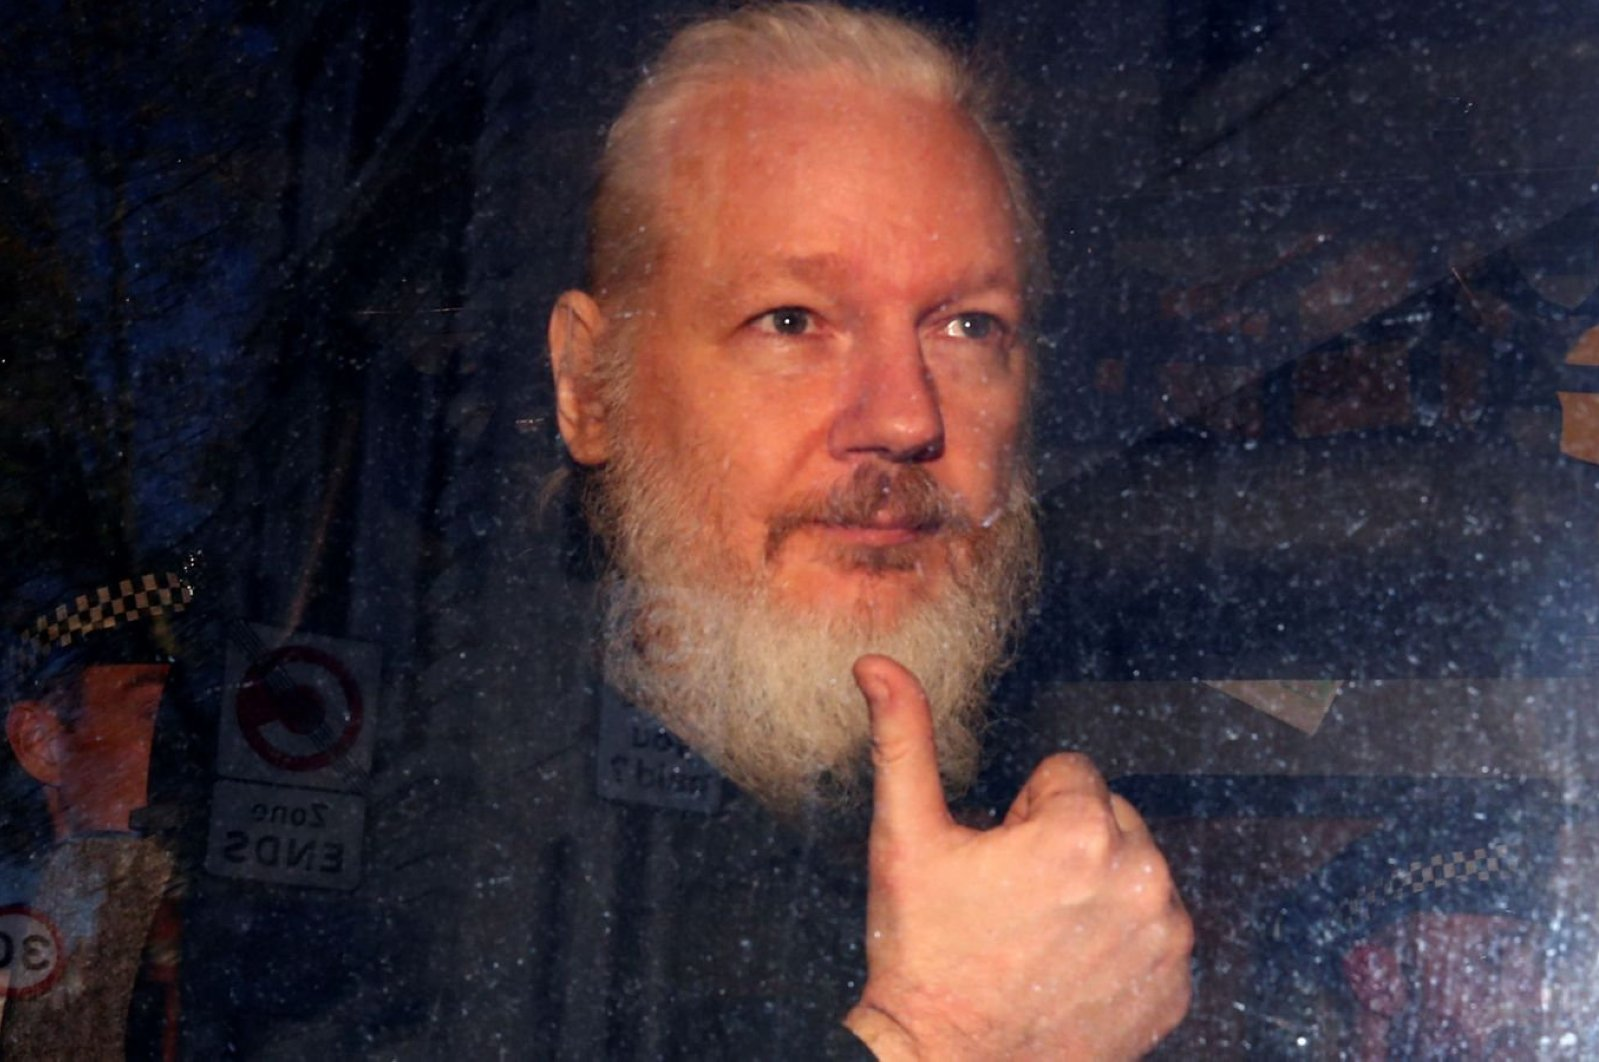 Julian Assange gestures as he arrives at Westminster Magistrates' Court, London, Britain, April 11, 2019. (AP Photo)